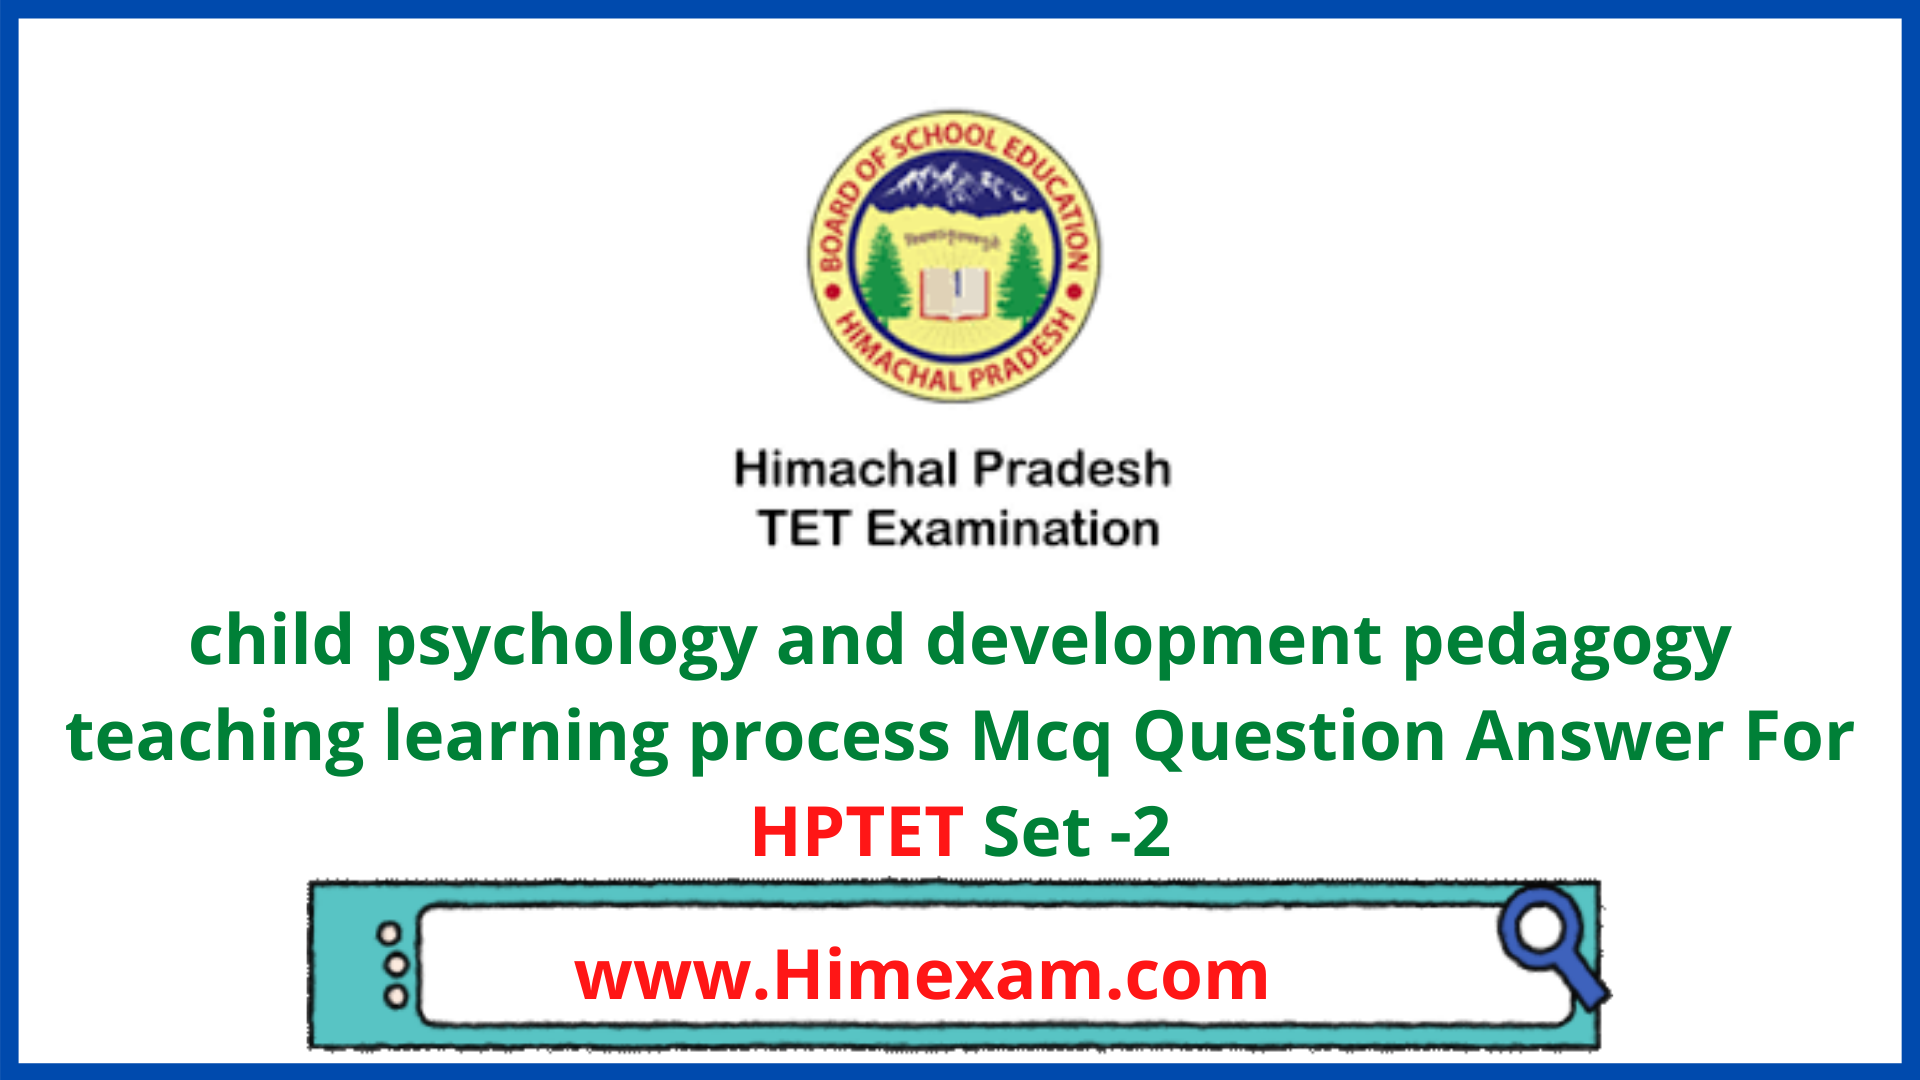 child psychology and development pedagogy teaching learning process Mcq Question Answer For HPTET Set -2